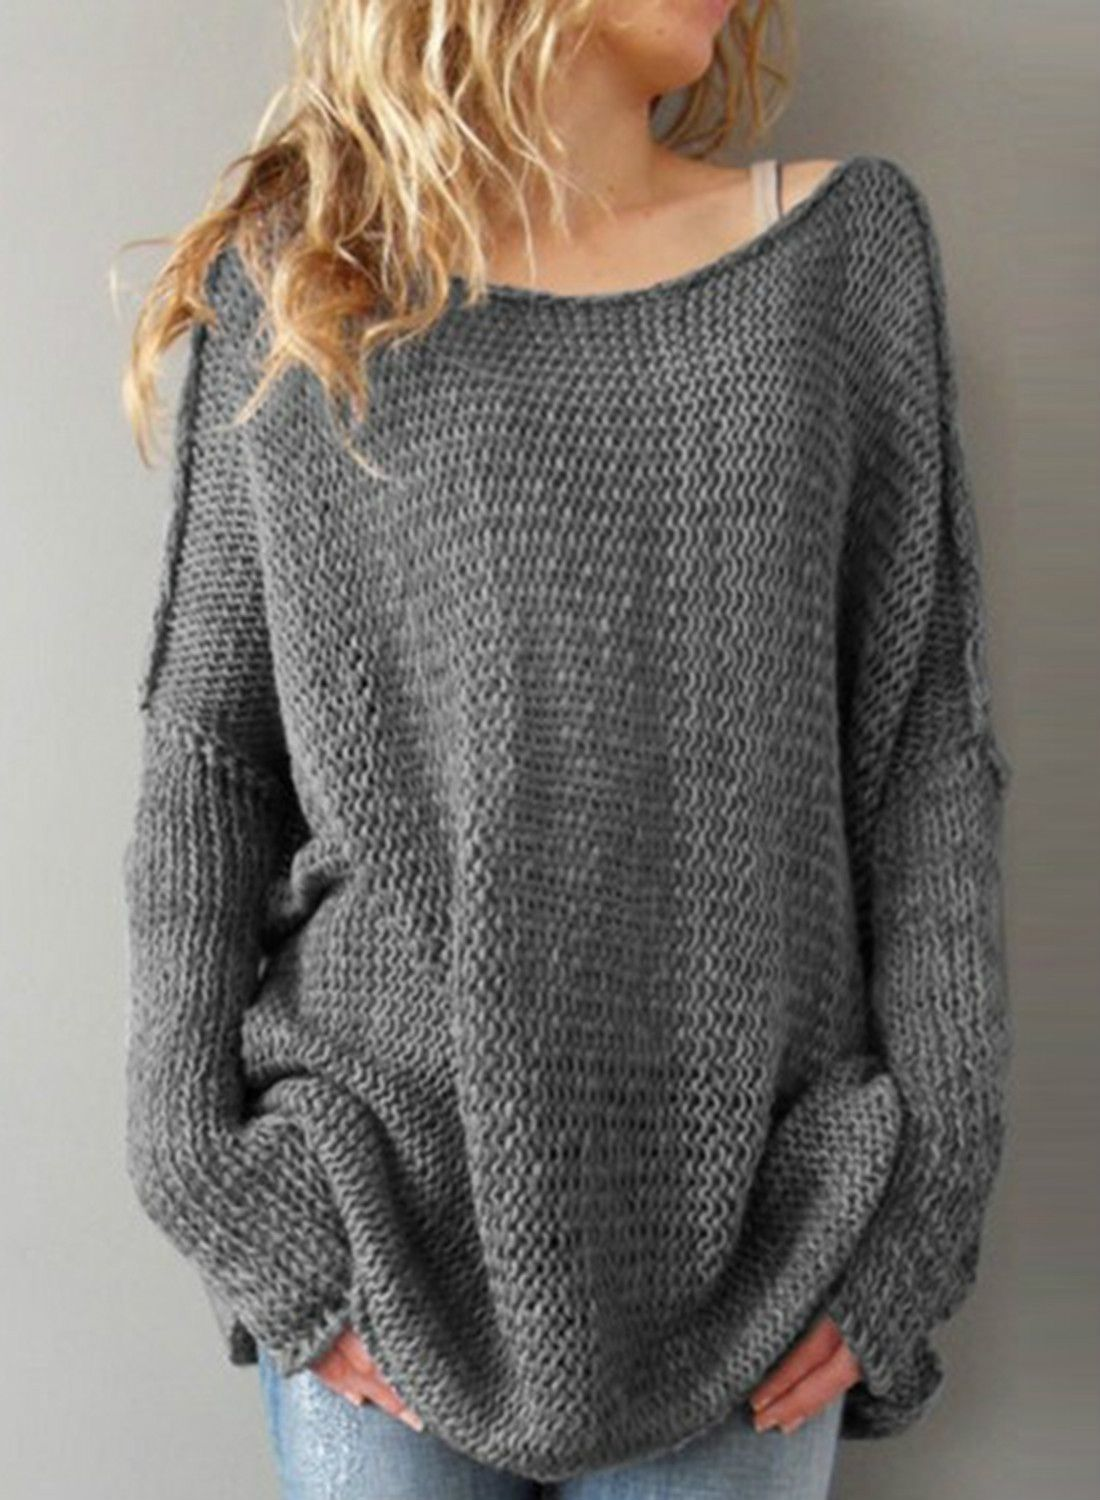 fe0fe4668 Women s Long Sleeve Solid Dropped Shoulder Loose Fit Pullover ...